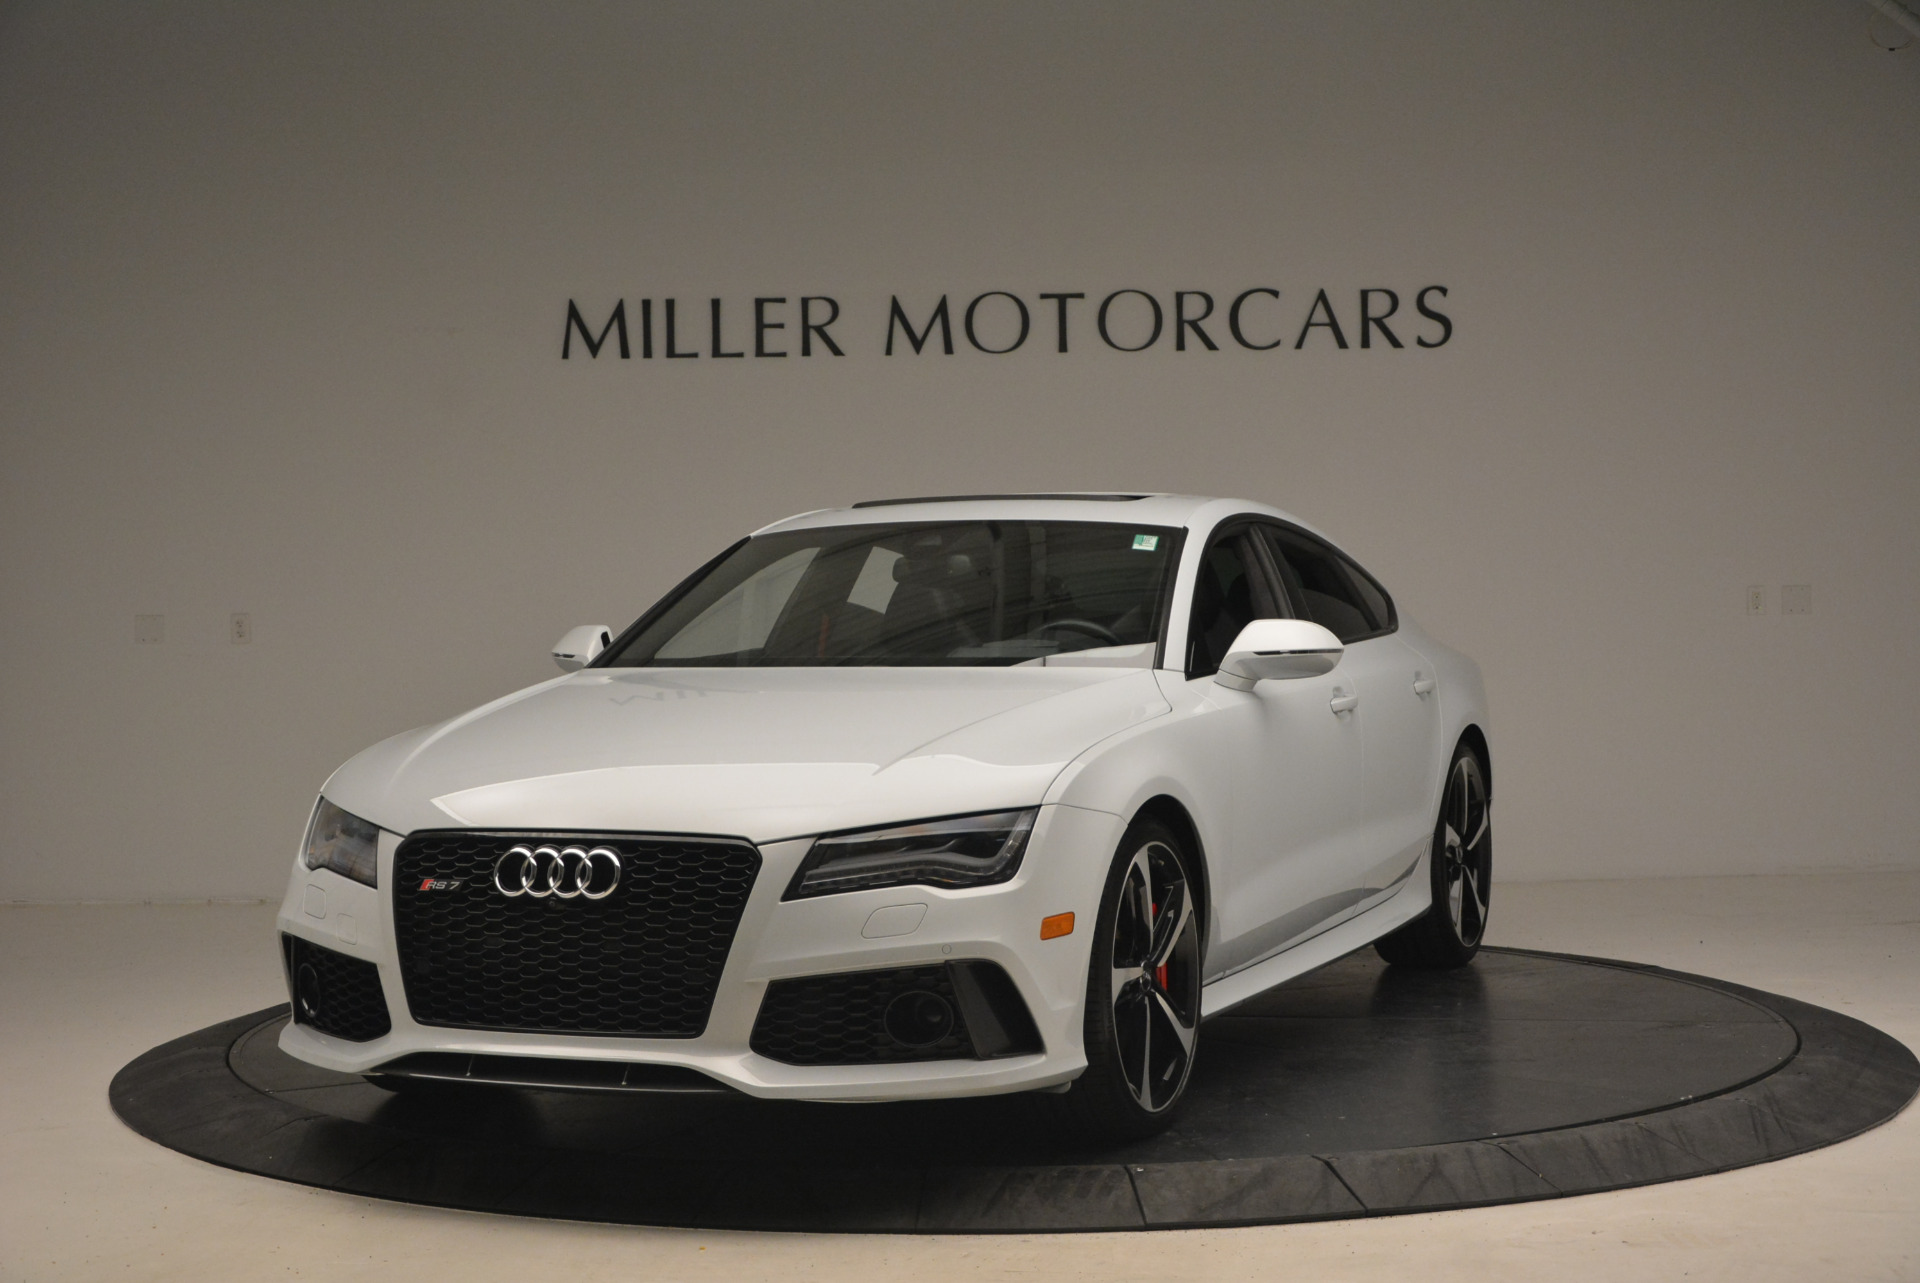 Used 2014 Audi RS 7 4.0T quattro Prestige for sale Sold at Bugatti of Greenwich in Greenwich CT 06830 1